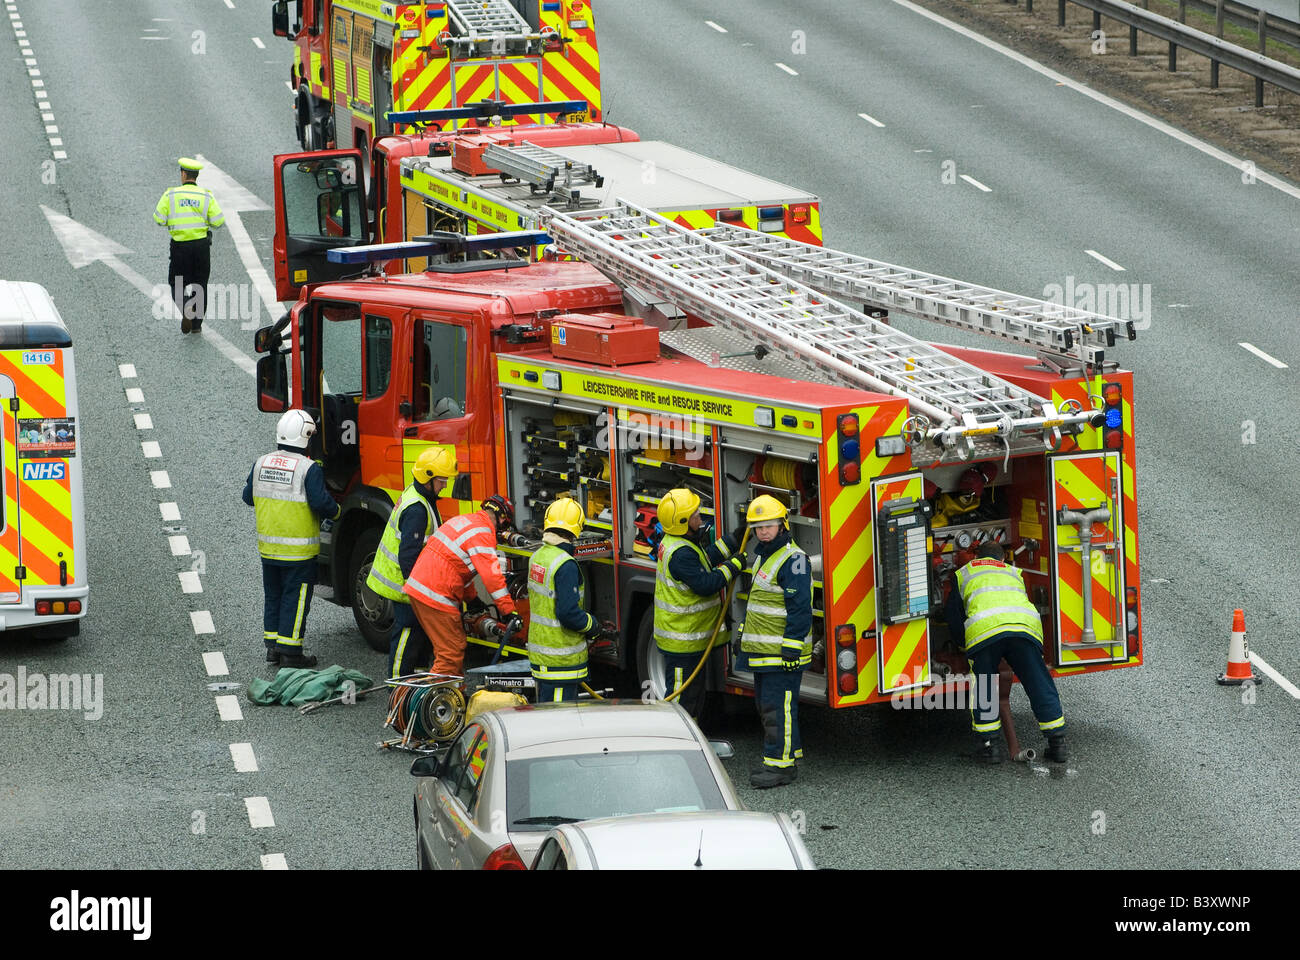 Emergency services attending a nasty road traffic accident on the m1 motorway in the midlands uk - Stock Image